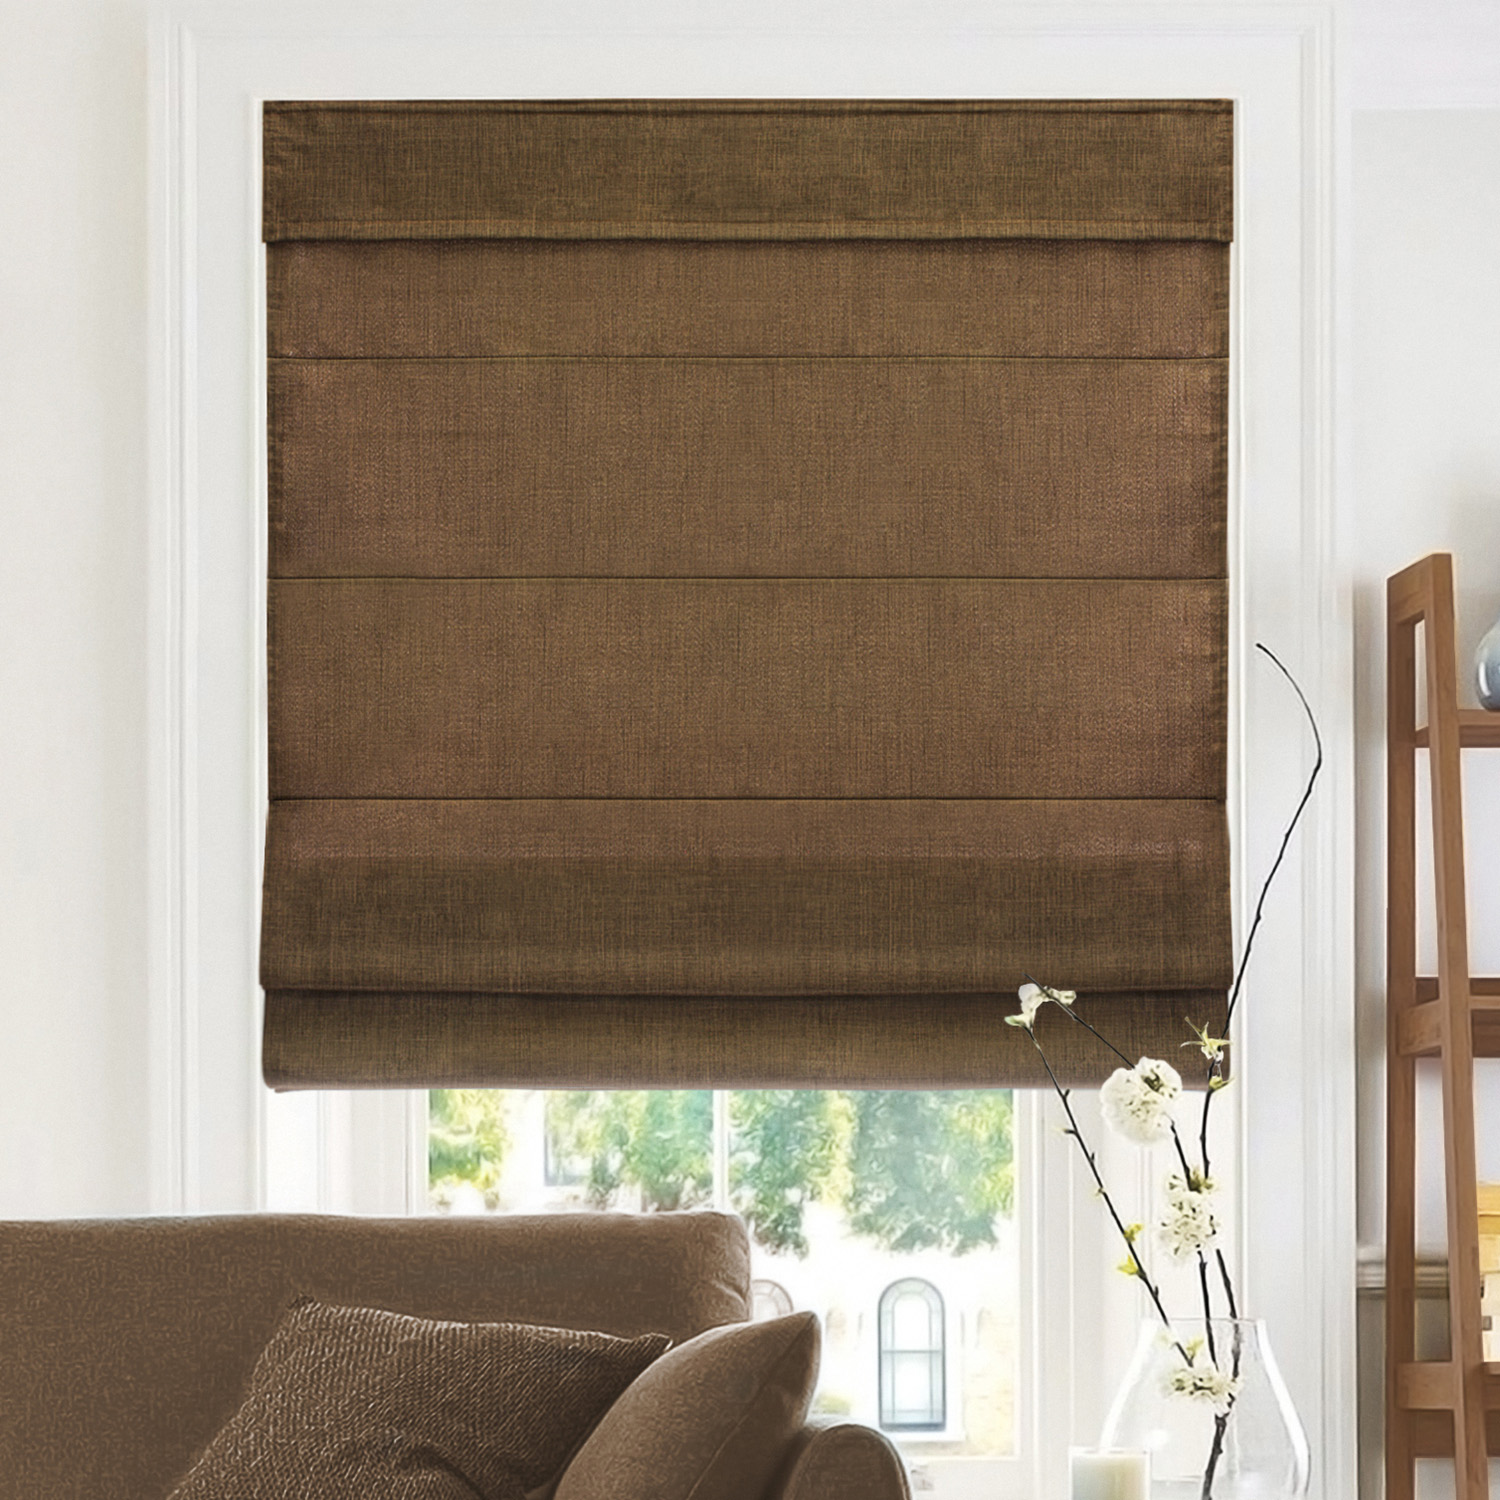 Chicology Cordless Roman Shades, Soft Fabric Window Blind, Belgian Chocolate (Privacy & Light Filtering)